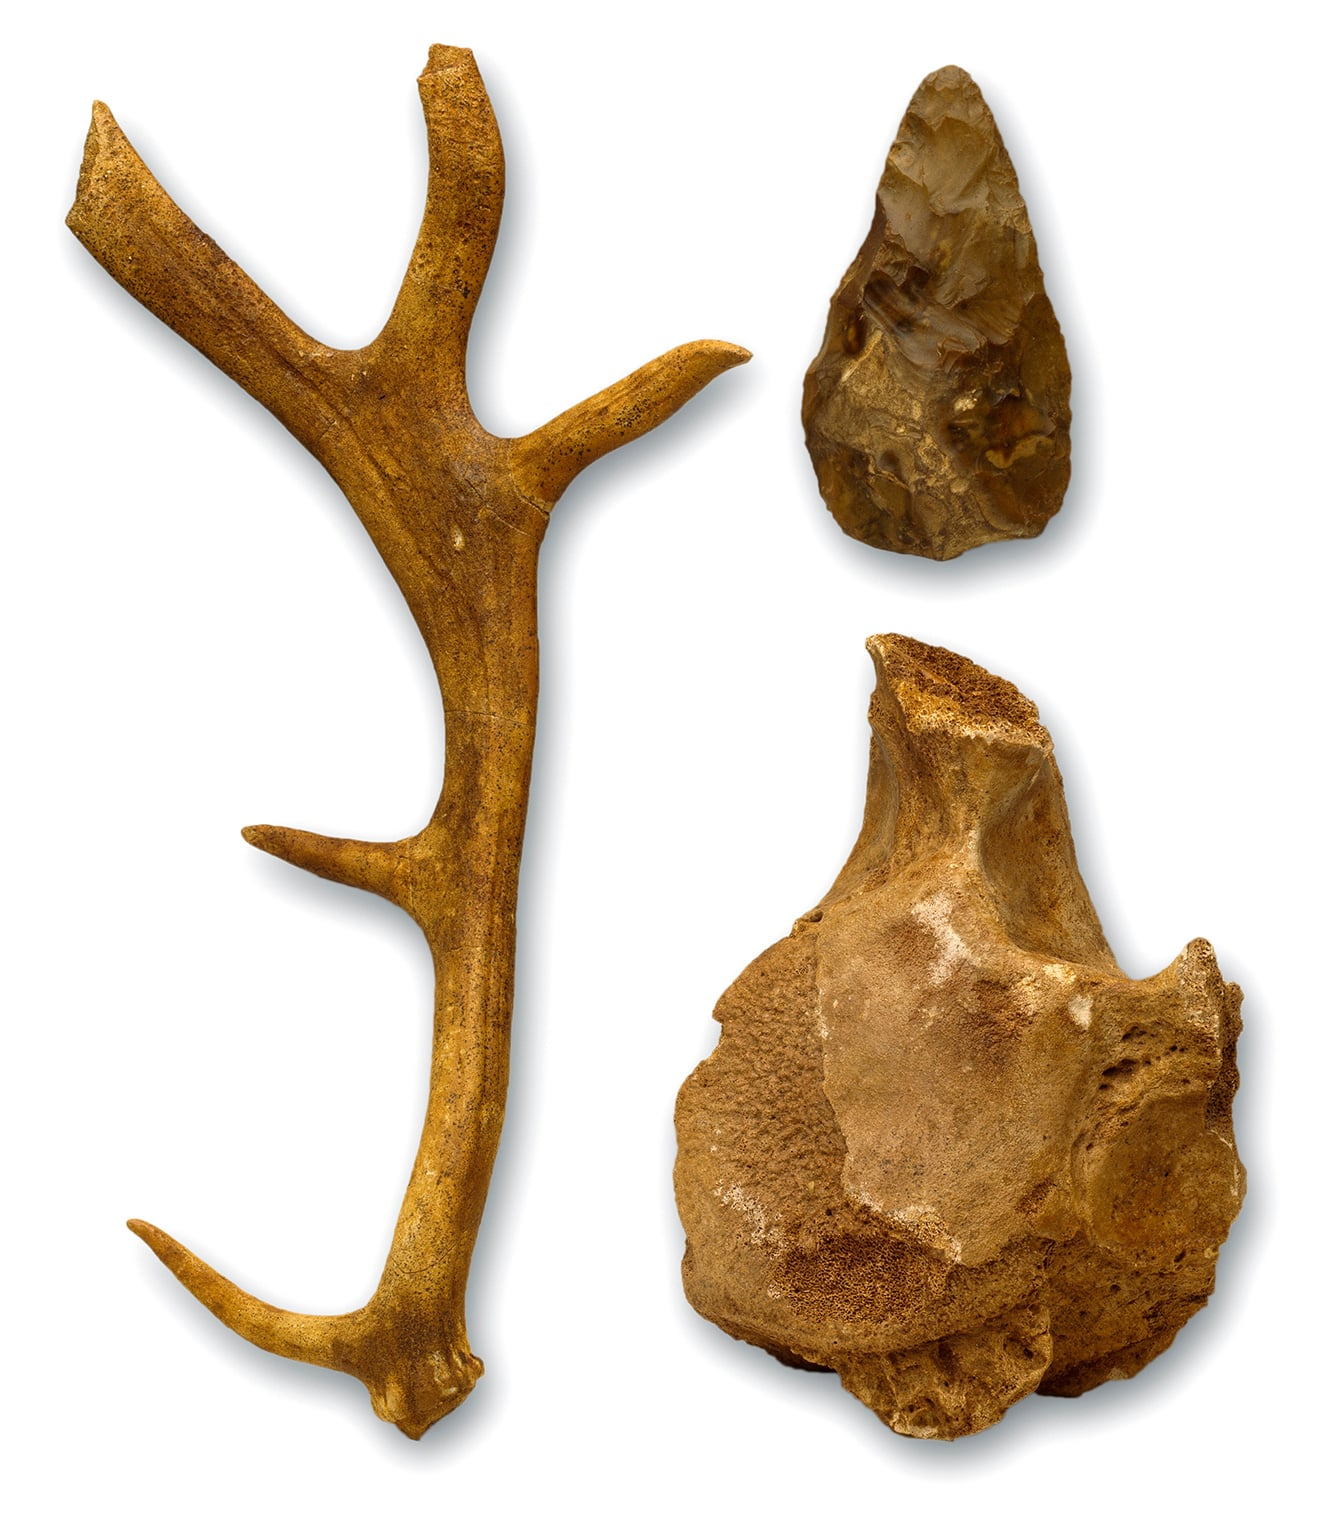 Hoxnian anters, bones and hand axe from Swanscombe